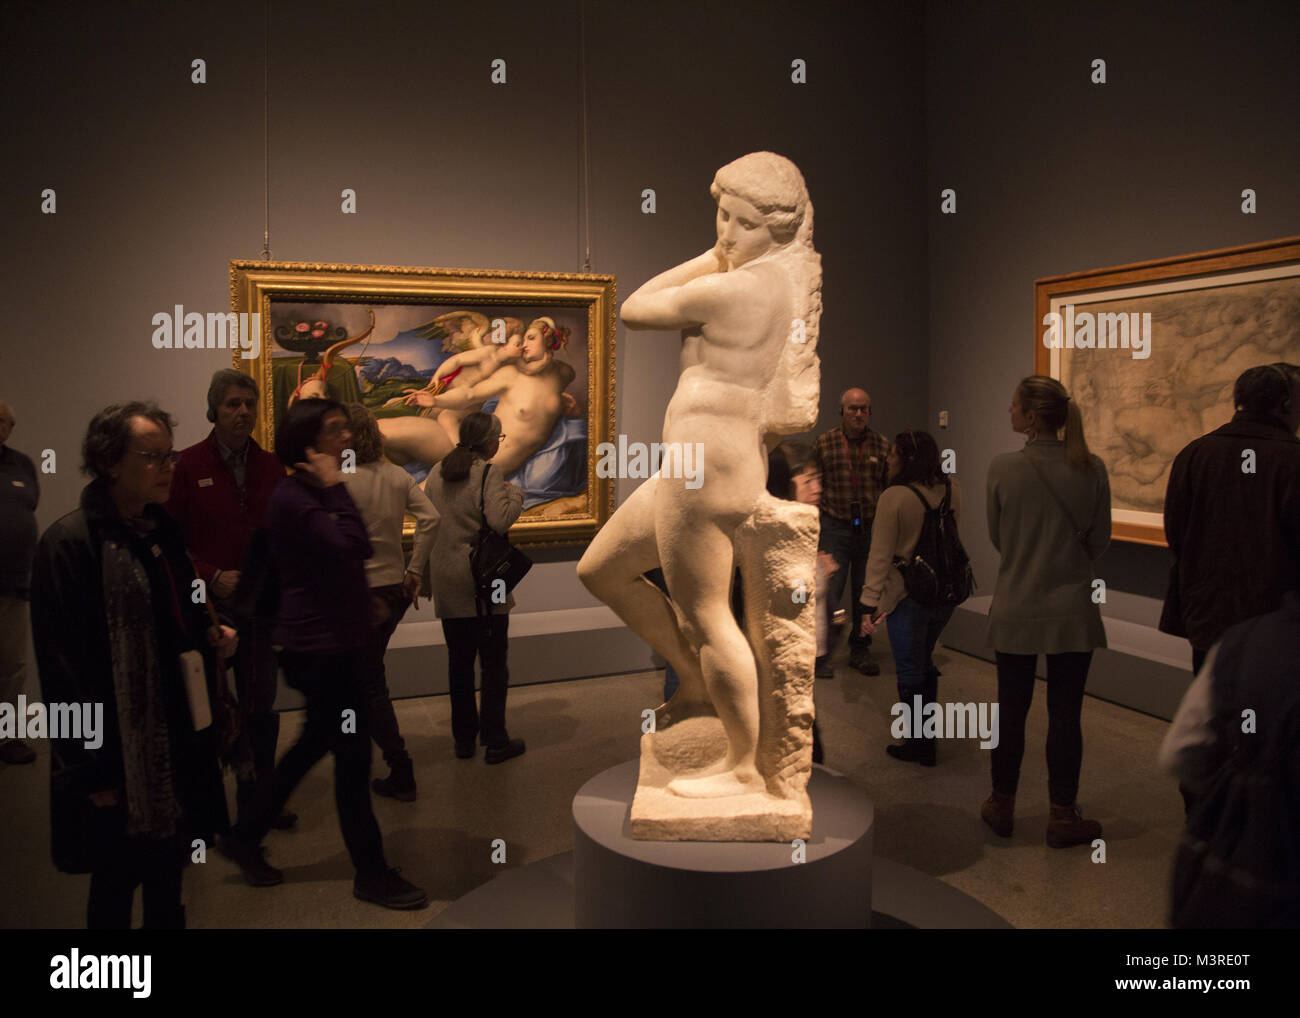 The Apollo, Apollo-David, David-Apollo, or Apollino is a 1.46 m unfinished marble sculpture by Michelangelo that Stock Photo